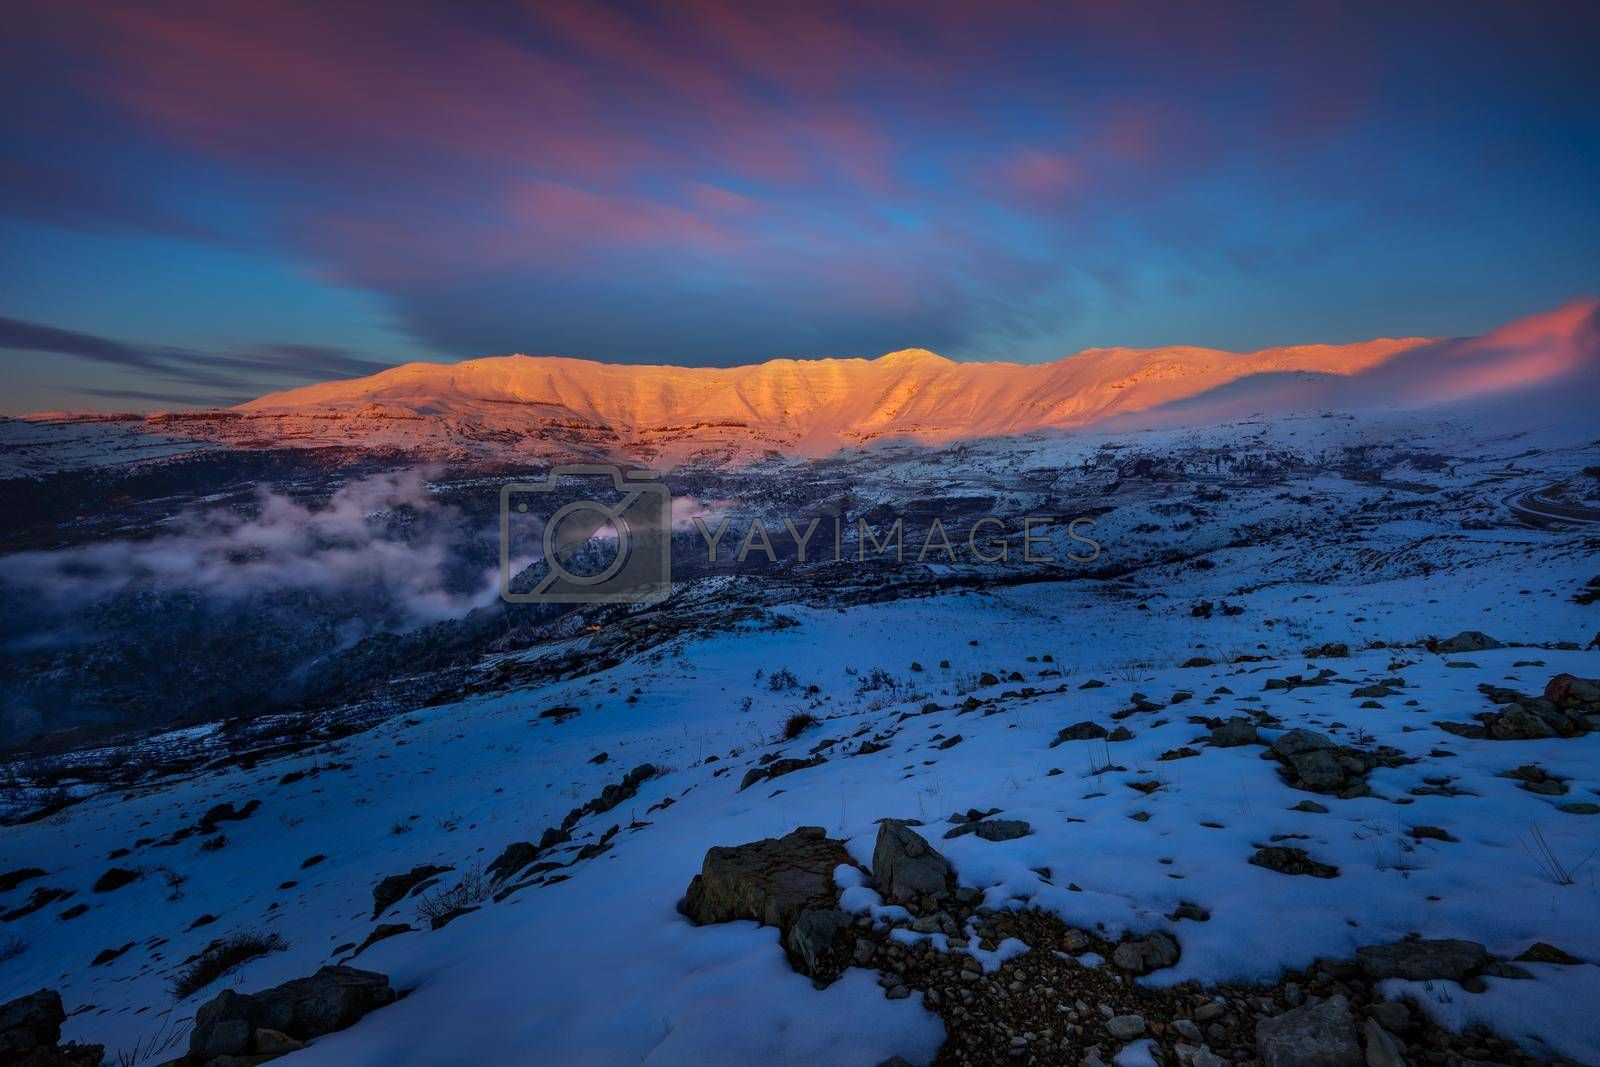 Evening View on a Beautiful Mountains Covered with Snow in Bright Sunset Light. Winter Location. Tannourine. Lebanon.